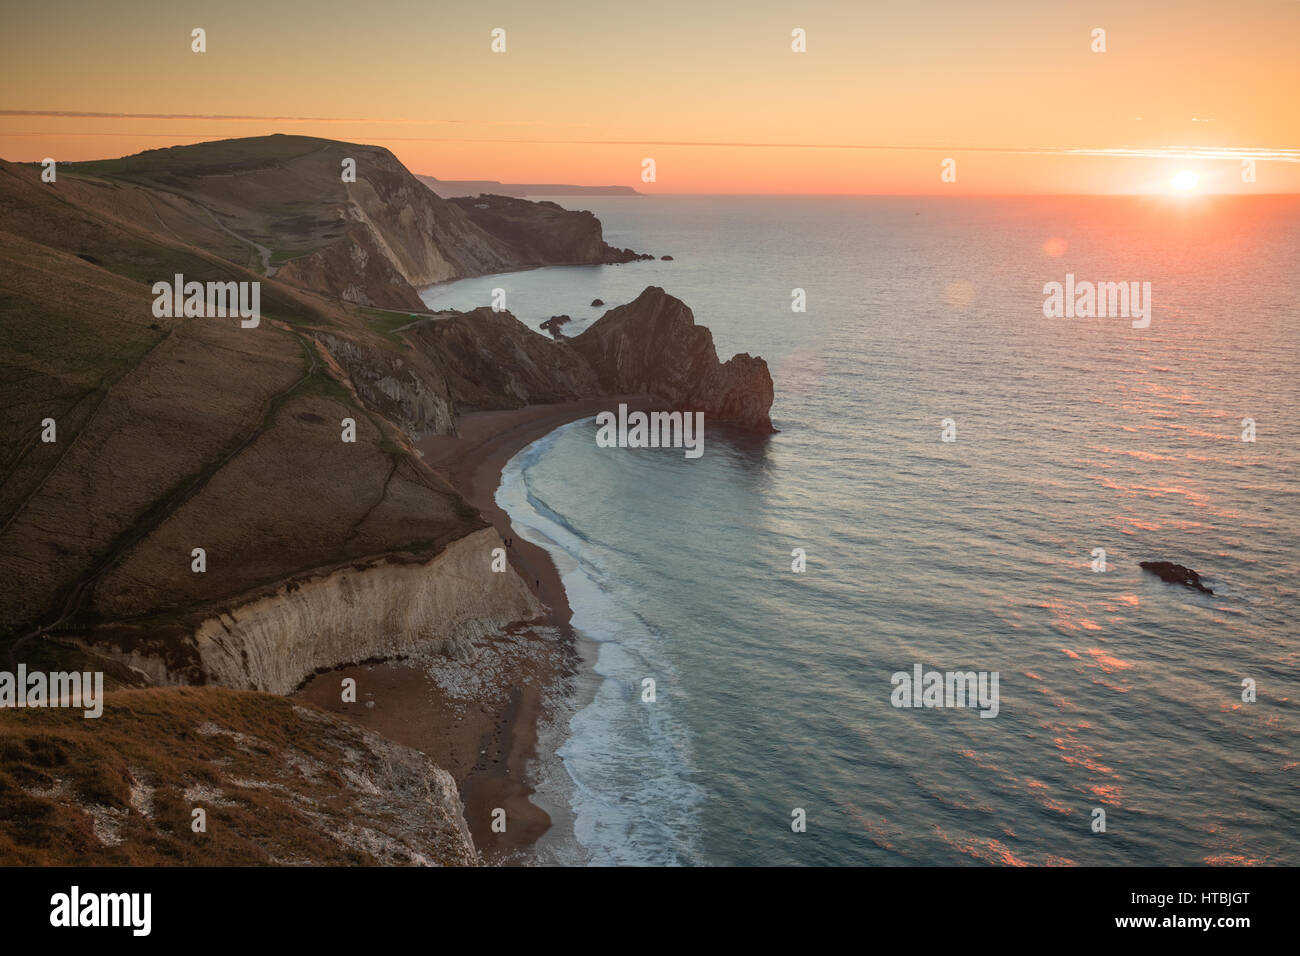 Durdle Door and St Oswald's Bay from Swyre Head at dawn, Purbeck, Jurassic Coast, Dorset, England, UK Stock Photo